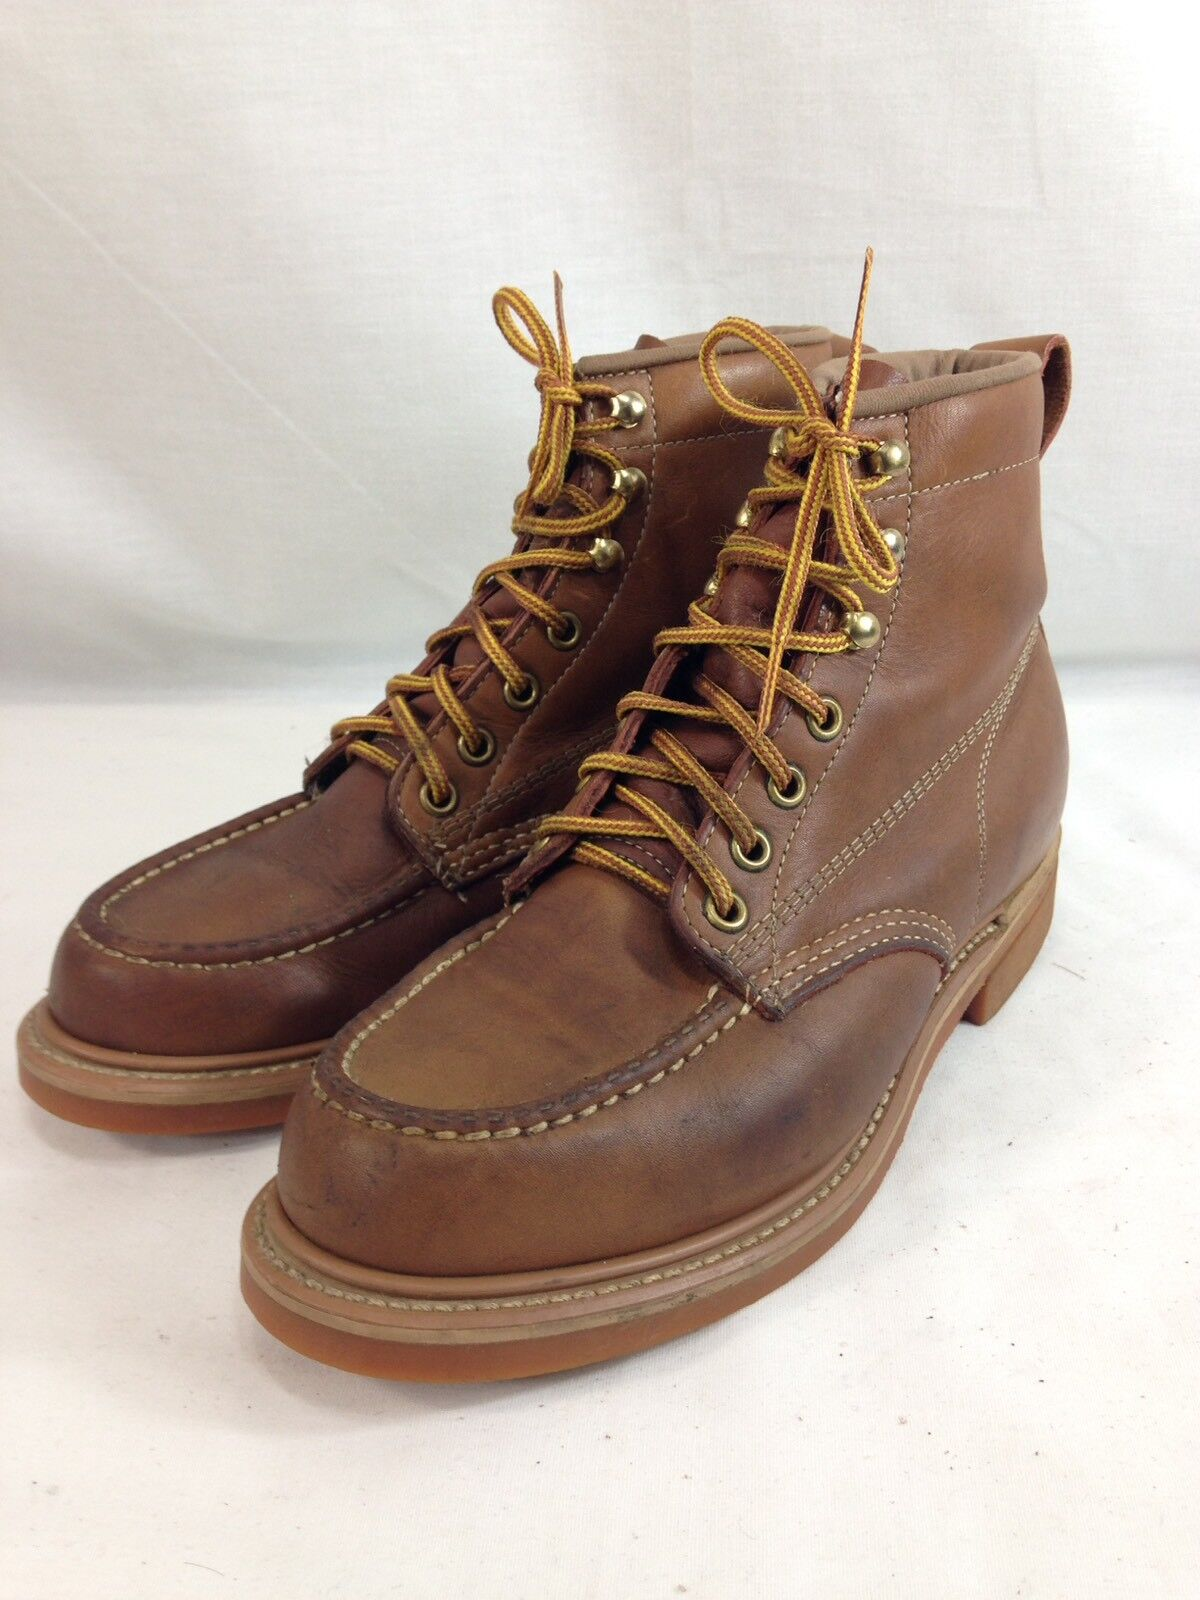 Unbranded Work Boots shoes Mens 6 Womens  7.5 Brown Leather Moc Toe Vibram Sole  online cheap